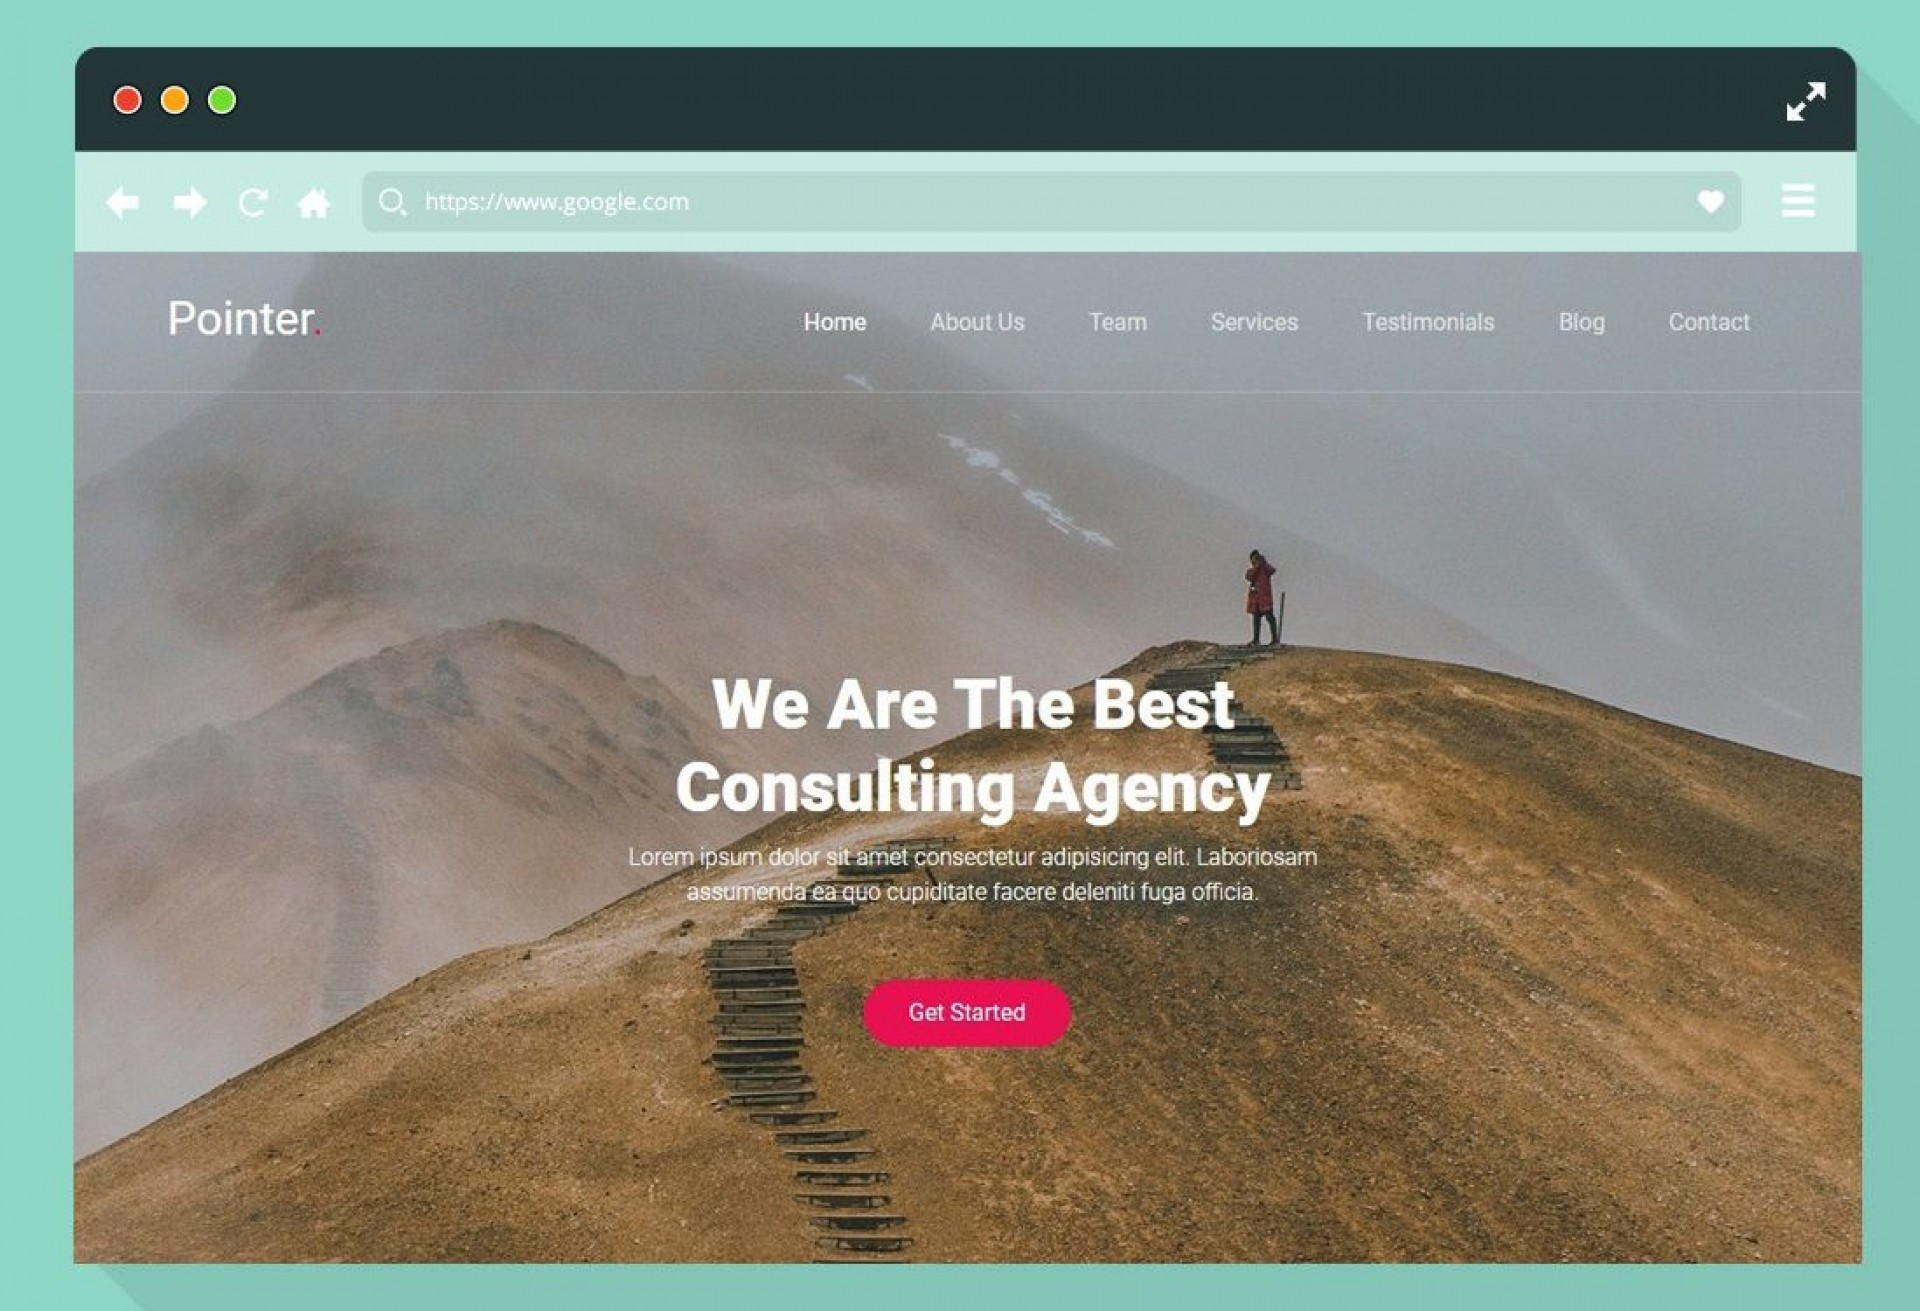 005 Amazing Single Page Website Template Idea  Templates Free Download One Html1920